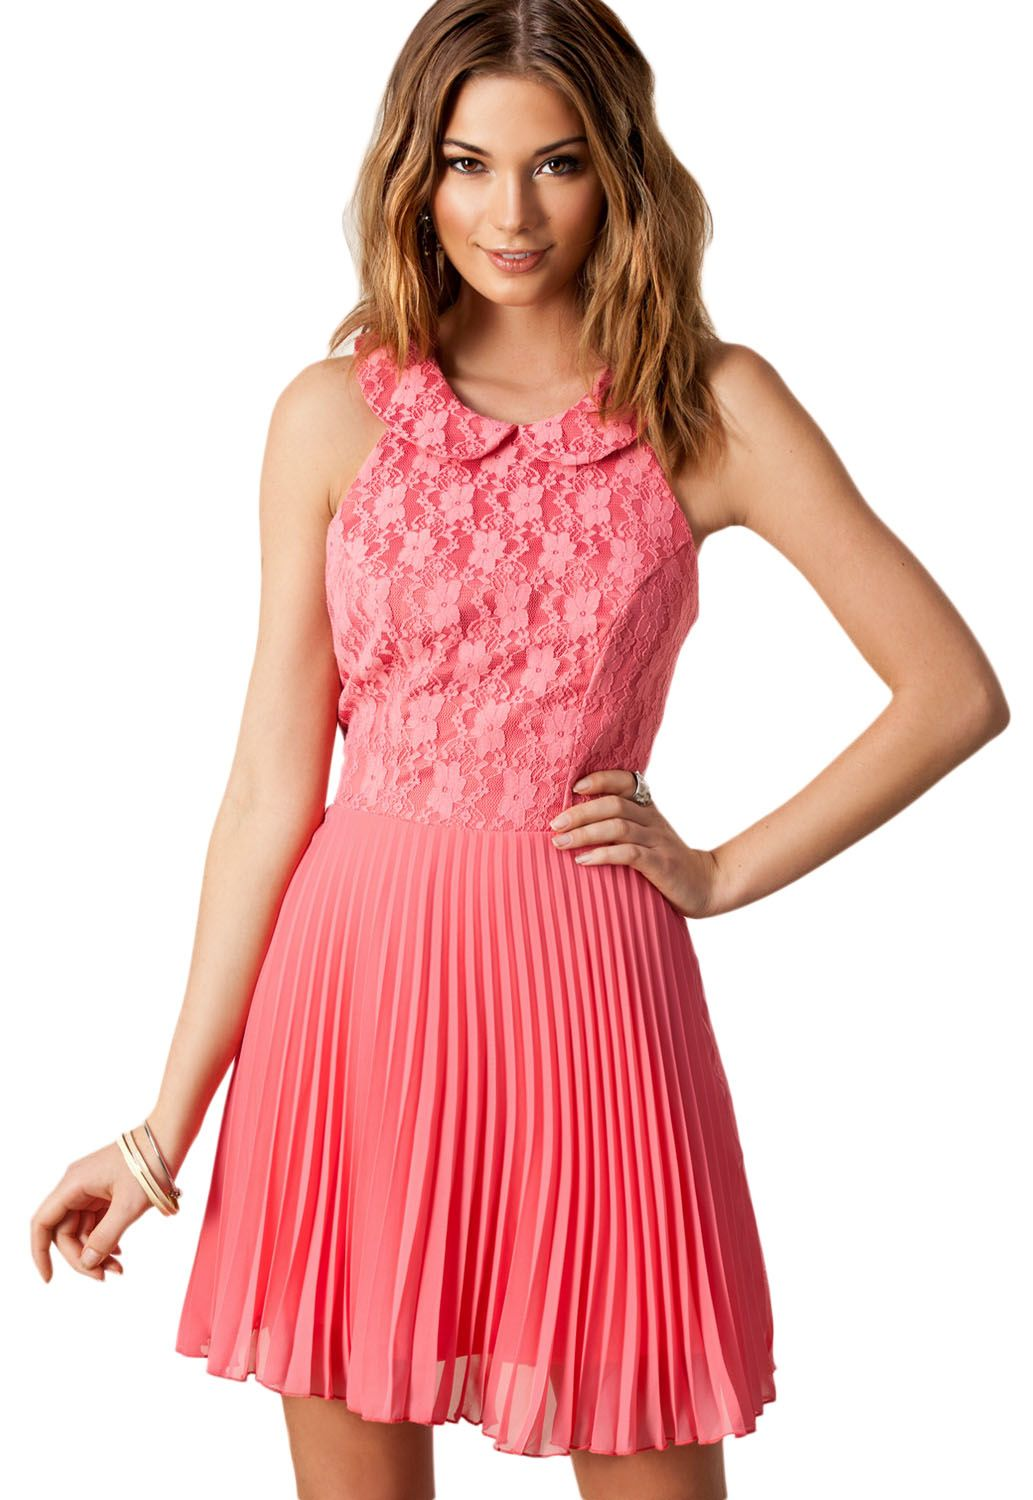 Pink Flower Lace Pleated Chiffon Evening Dress | Vestidos de fiesta ...